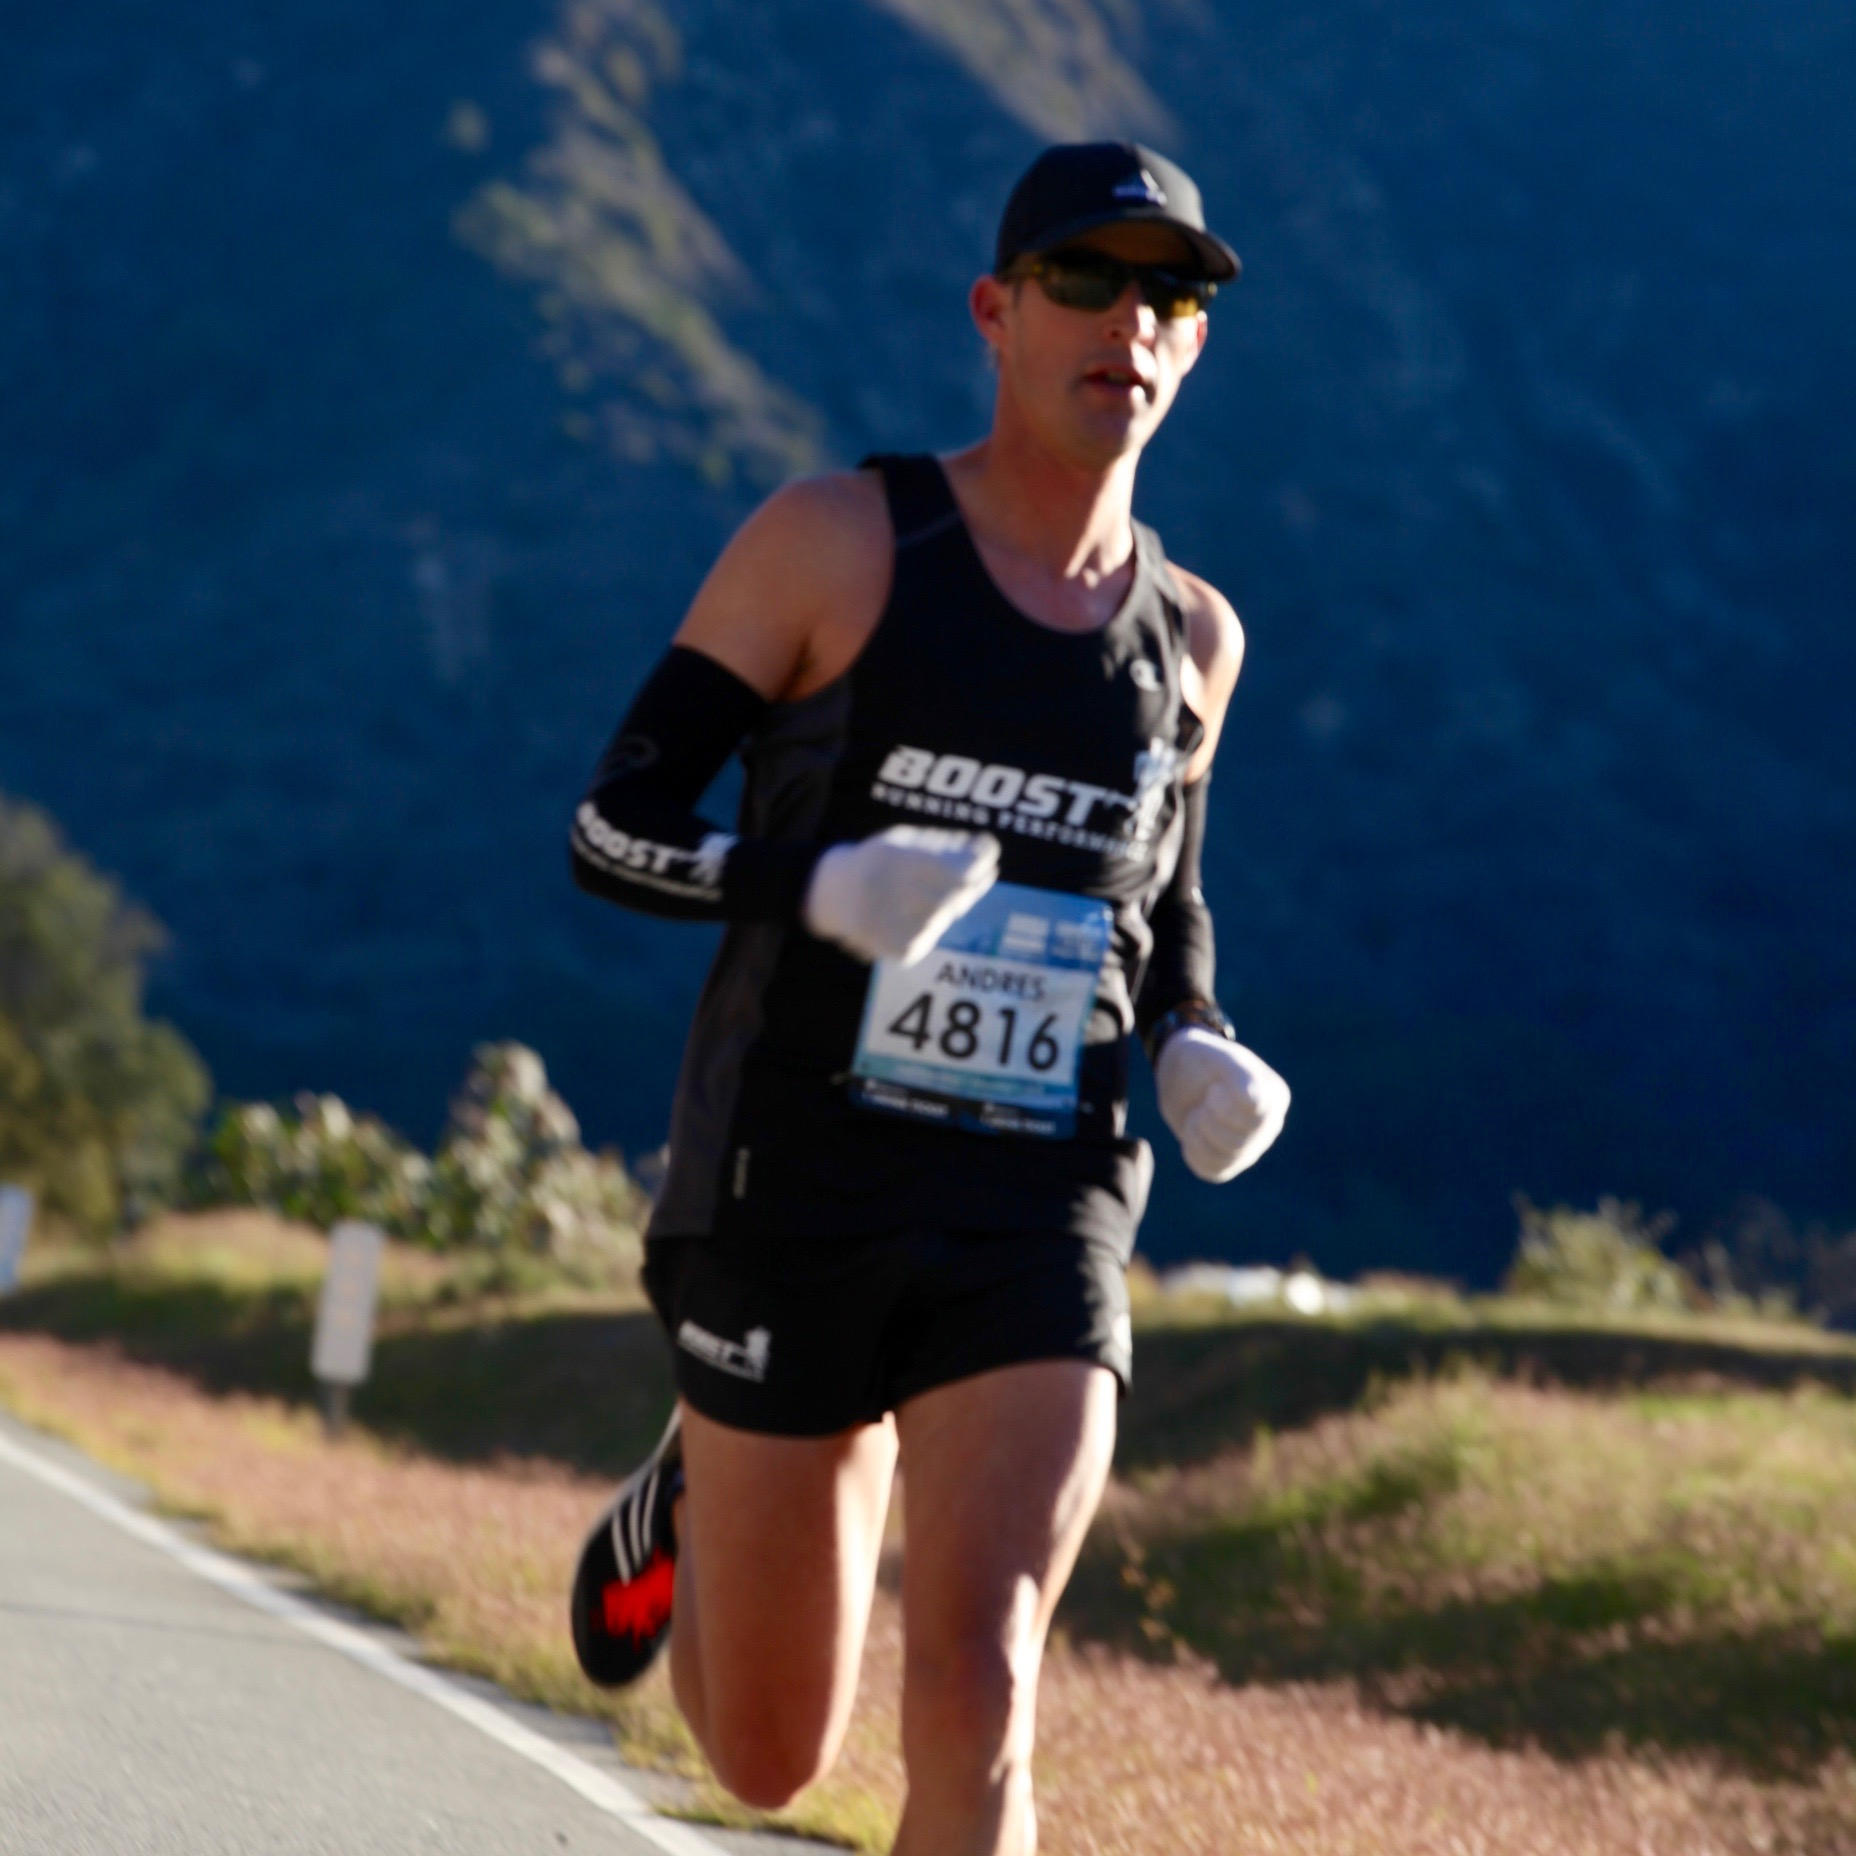 Andy racing at the Revel Canyon City half-marathon